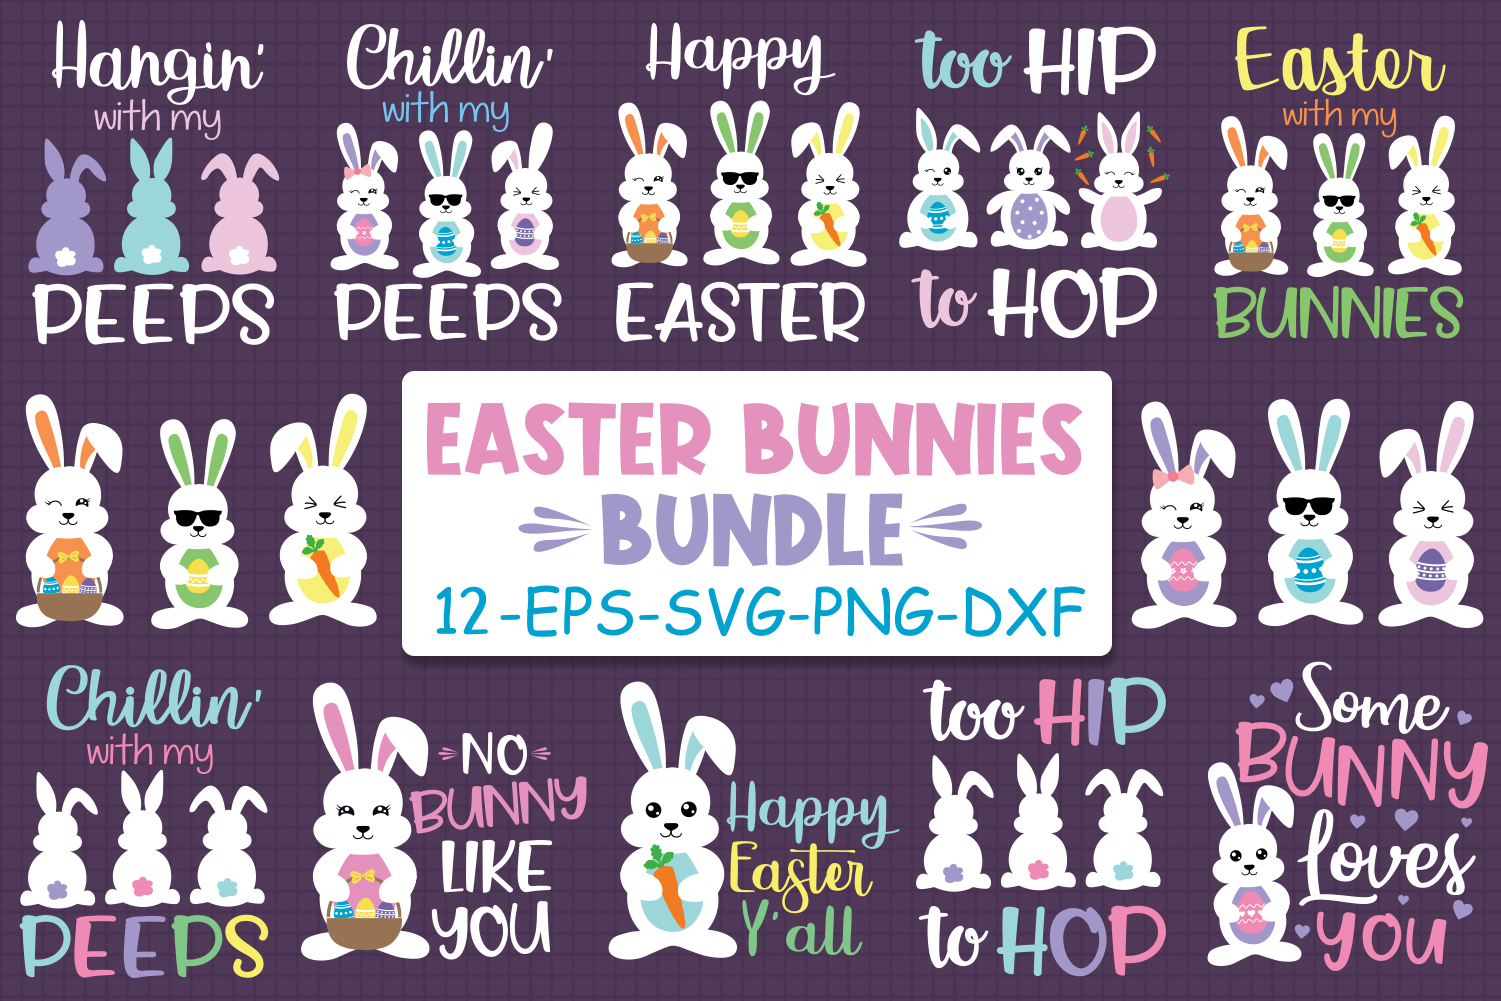 Download Free Easter Bunnies Bundle Graphic By All About Svg Creative Fabrica for Cricut Explore, Silhouette and other cutting machines.